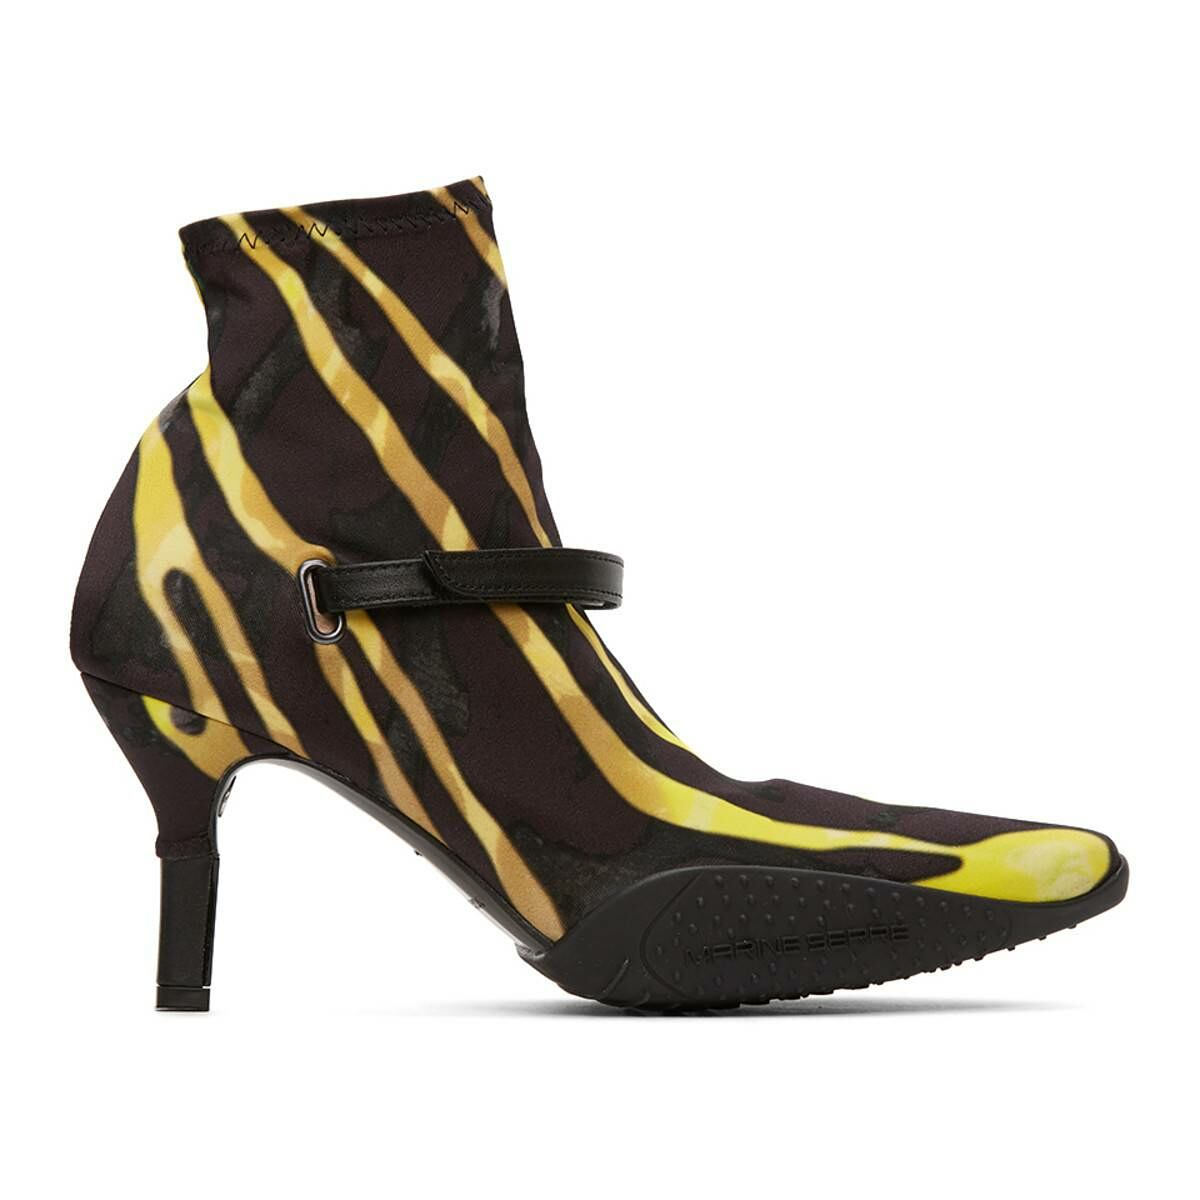 Marine Serre Black and Yellow Jersey Sock Ankle Heel Boots Ssense USA WOMEN Women SHOES Womens ANKLE BOOTS